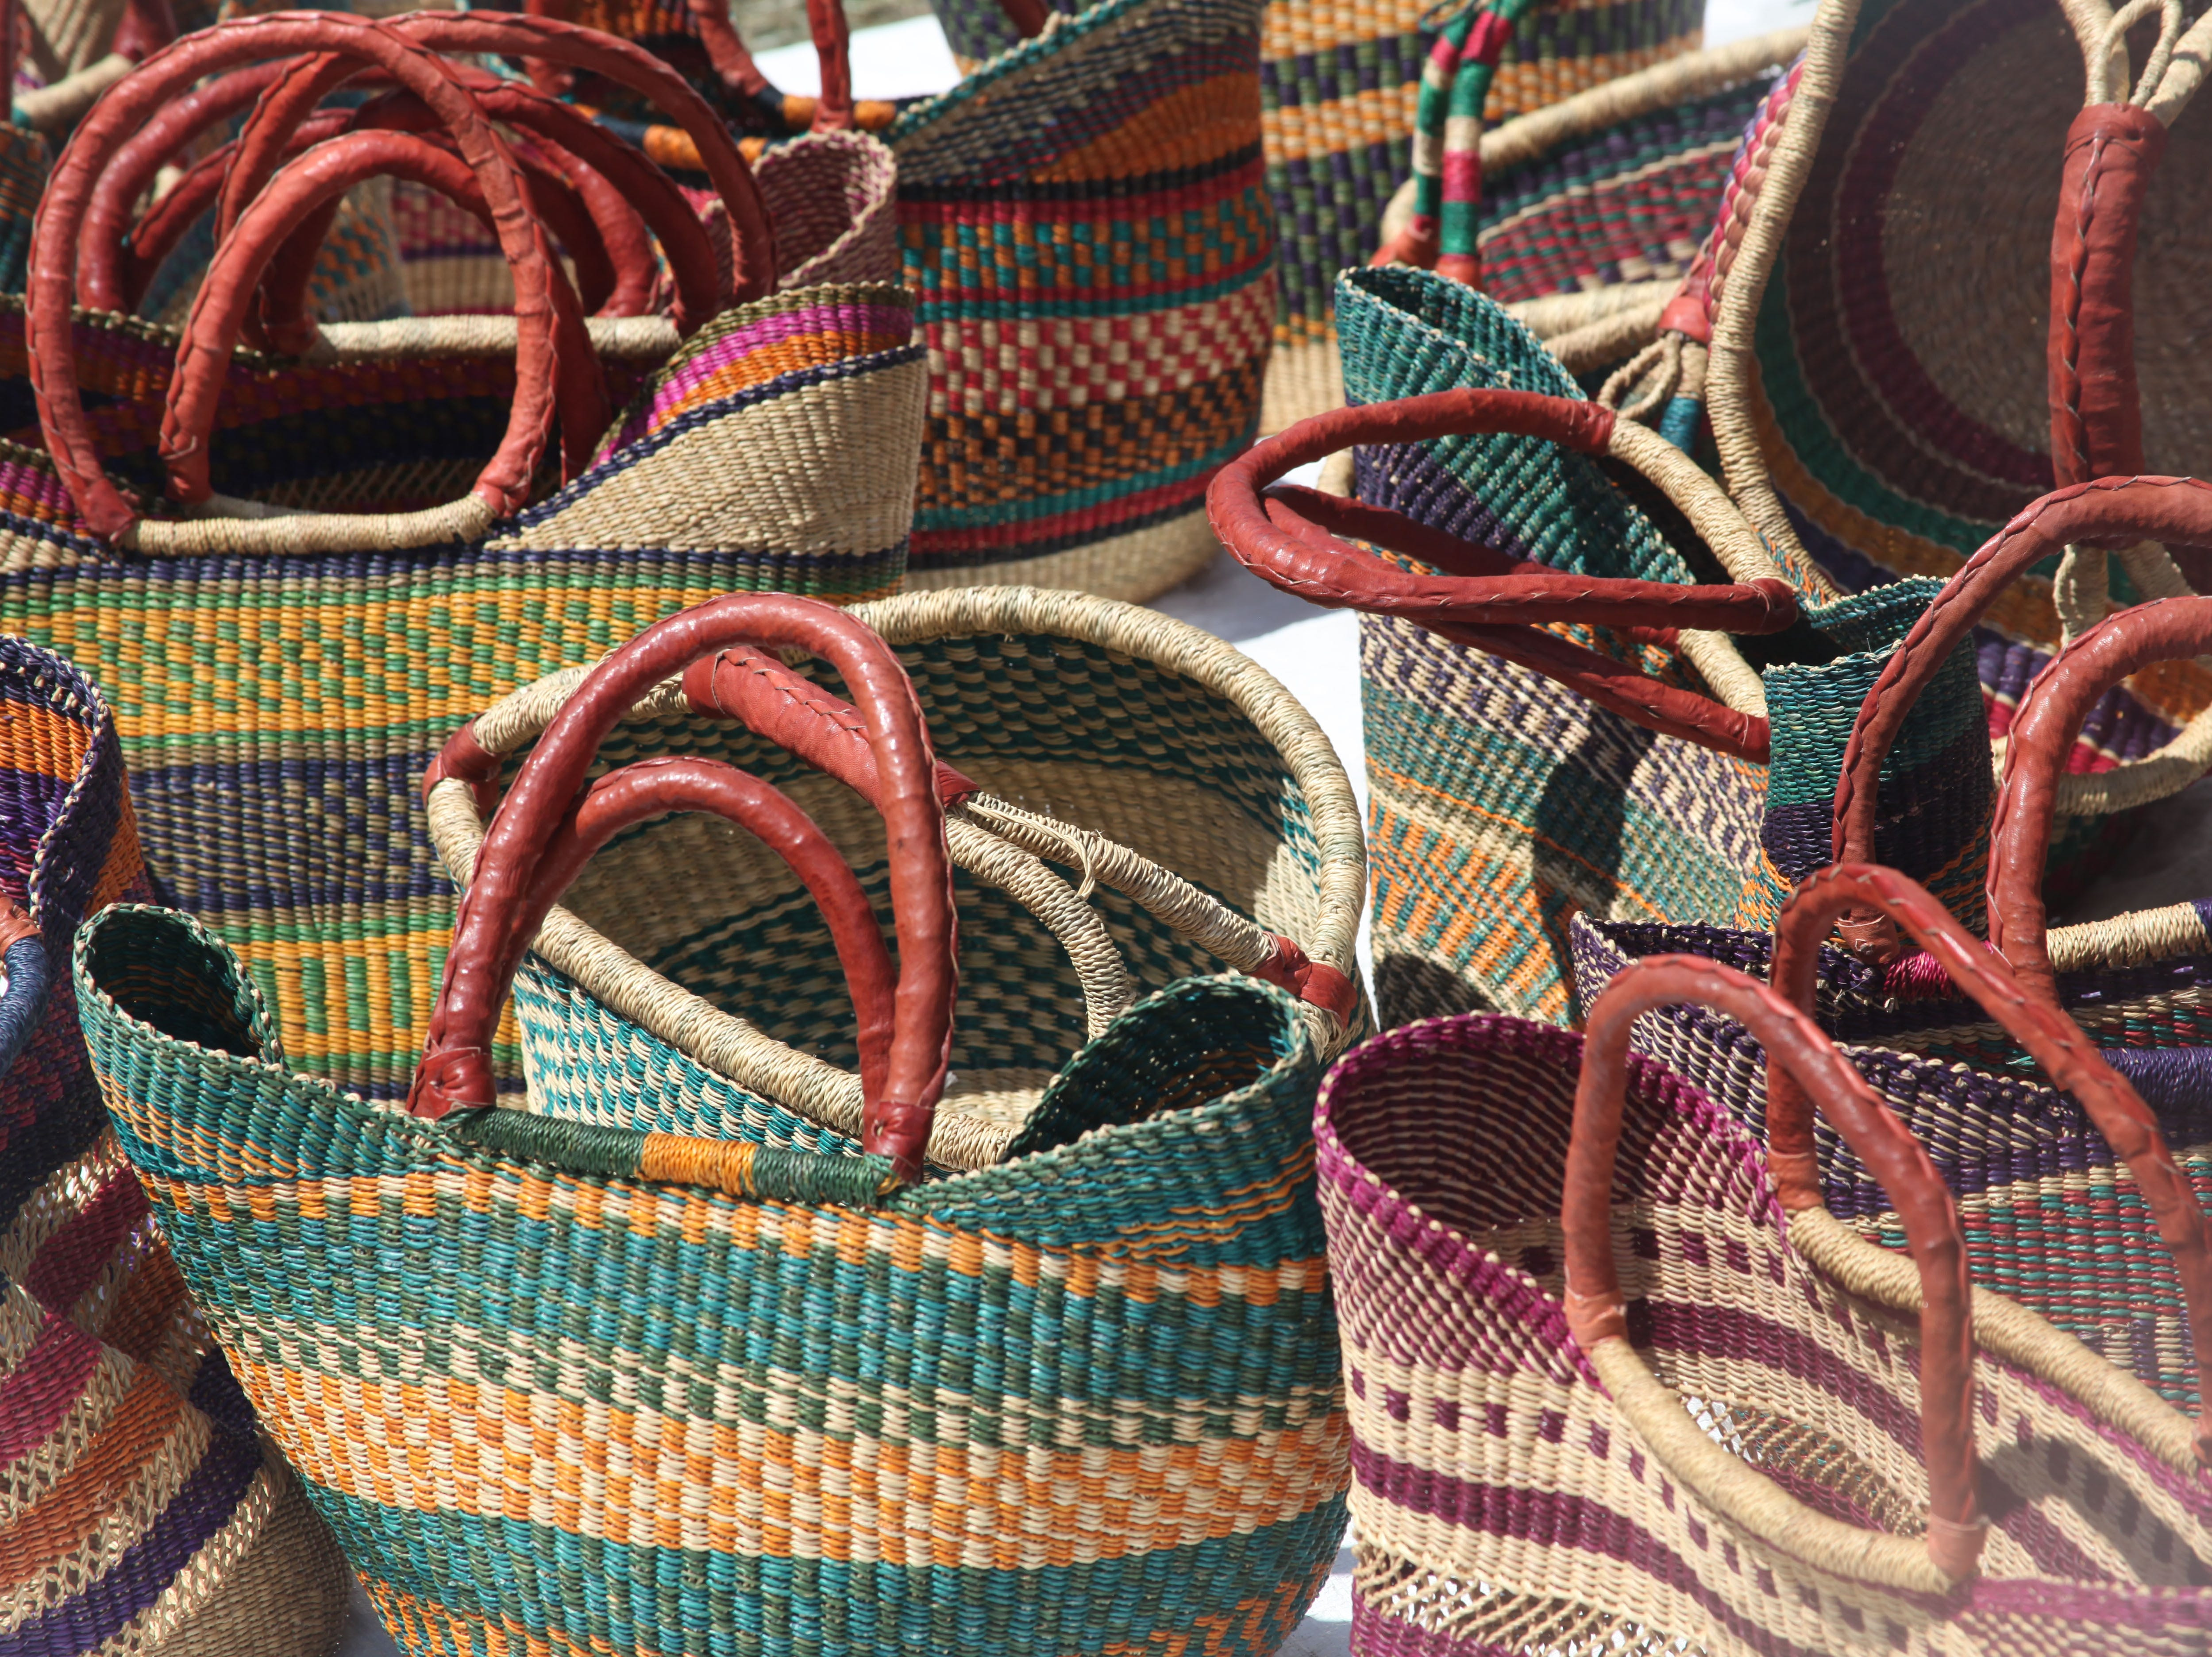 Colorful bags sit ready for purchase at the 2018 Goombay Festival at the Roger McGuire Green in Pack Square Park on Sept. 8, 2018.